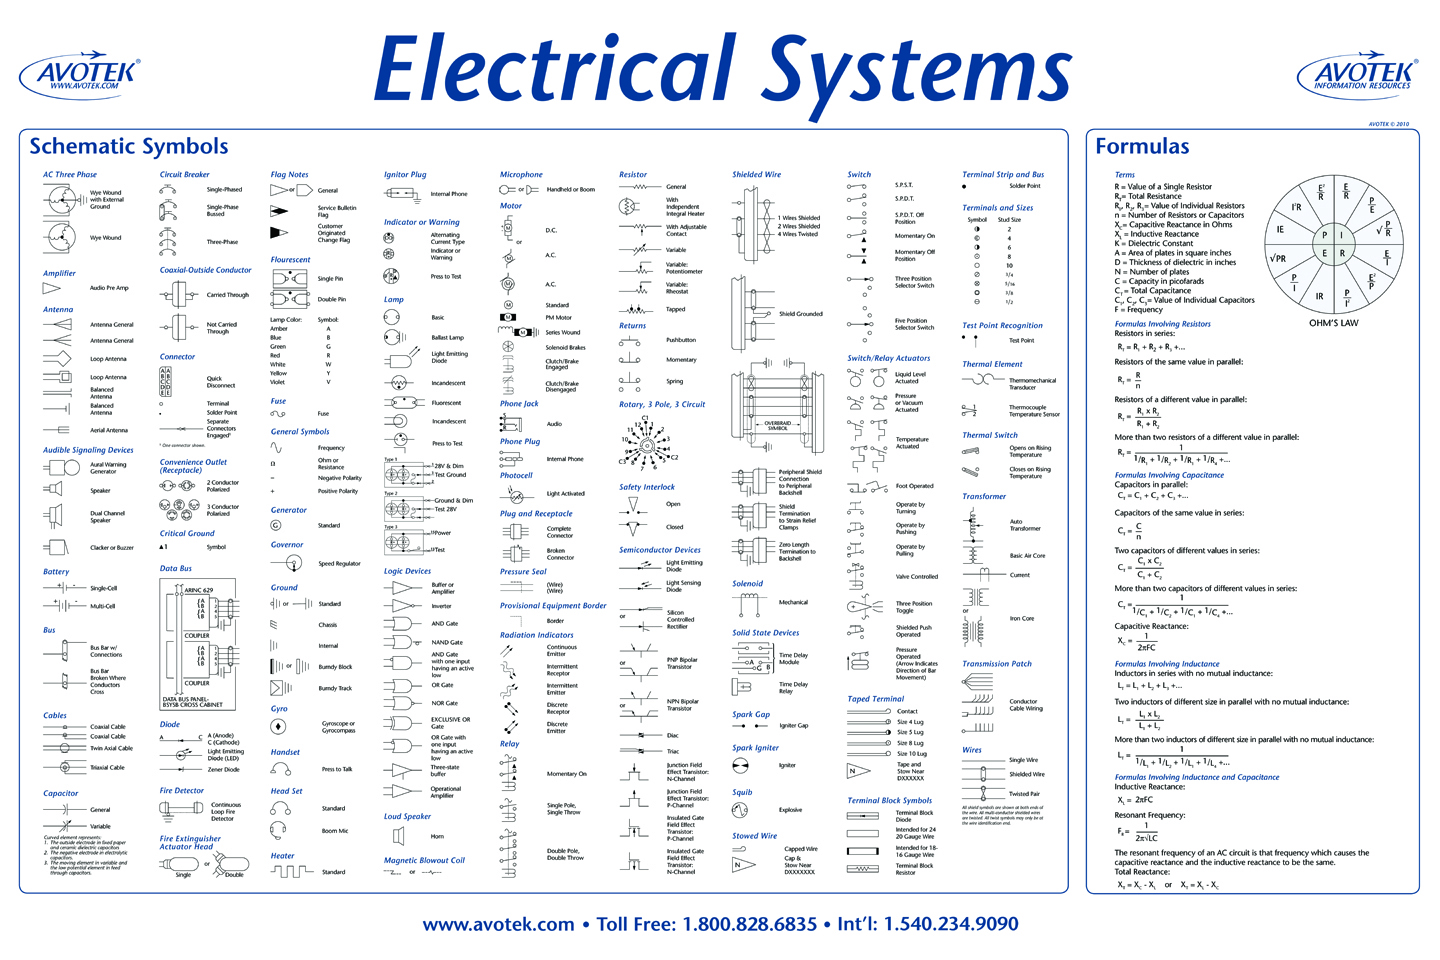 Wiring Basics Formulas Diagram Data Basic Complete Electrical Circuit Classroom Poster Systems Avotek Home